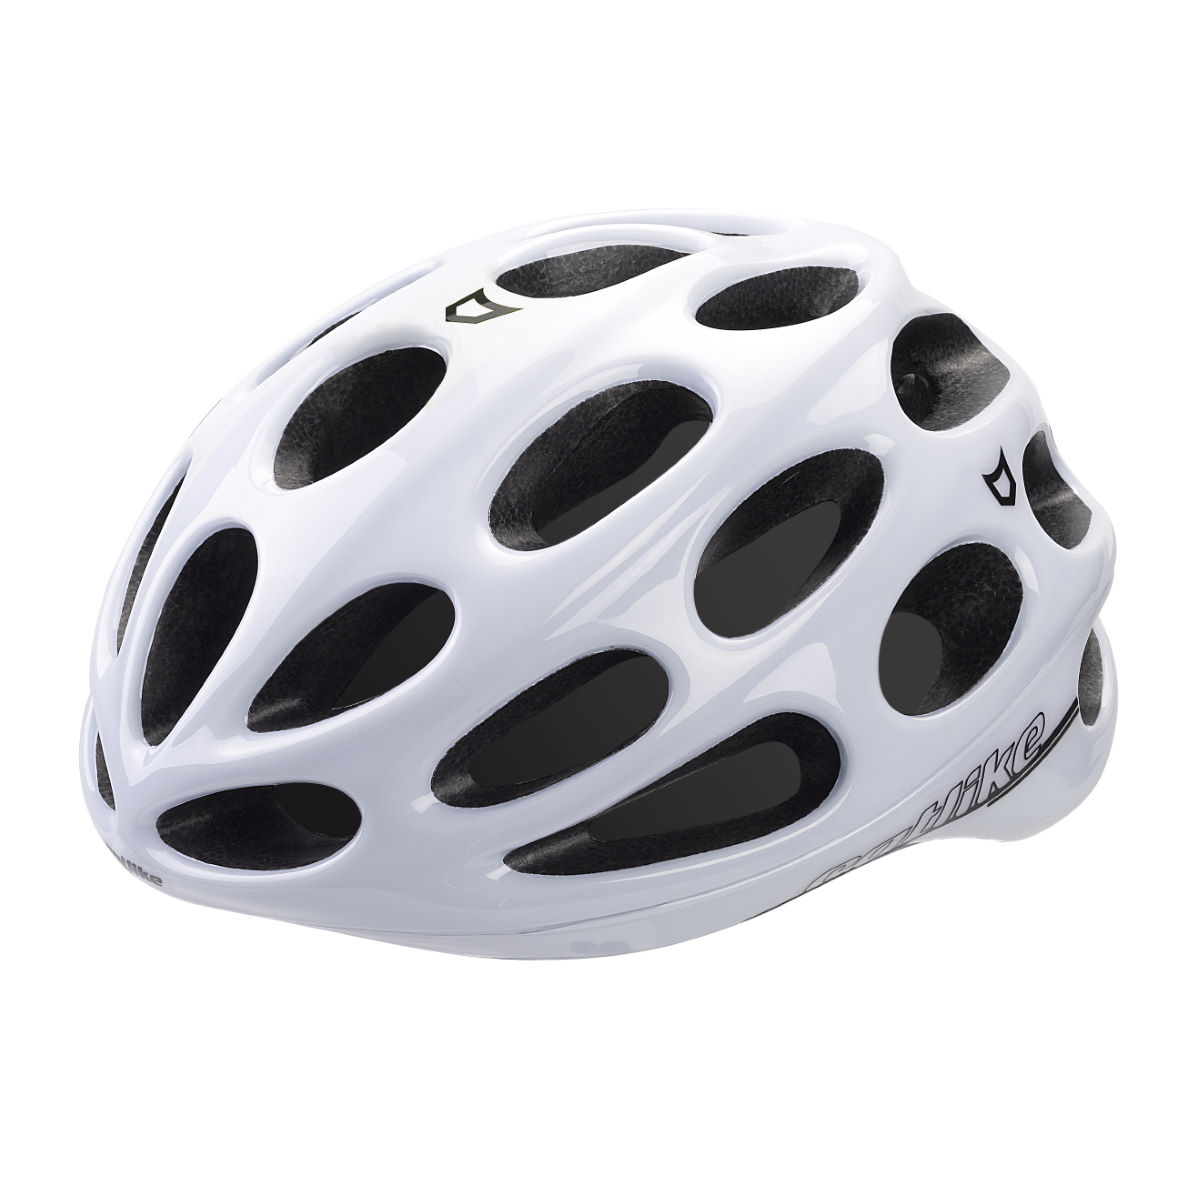 Casque de route Catlike Olula - Medium Blanc/Blanc Casques de route